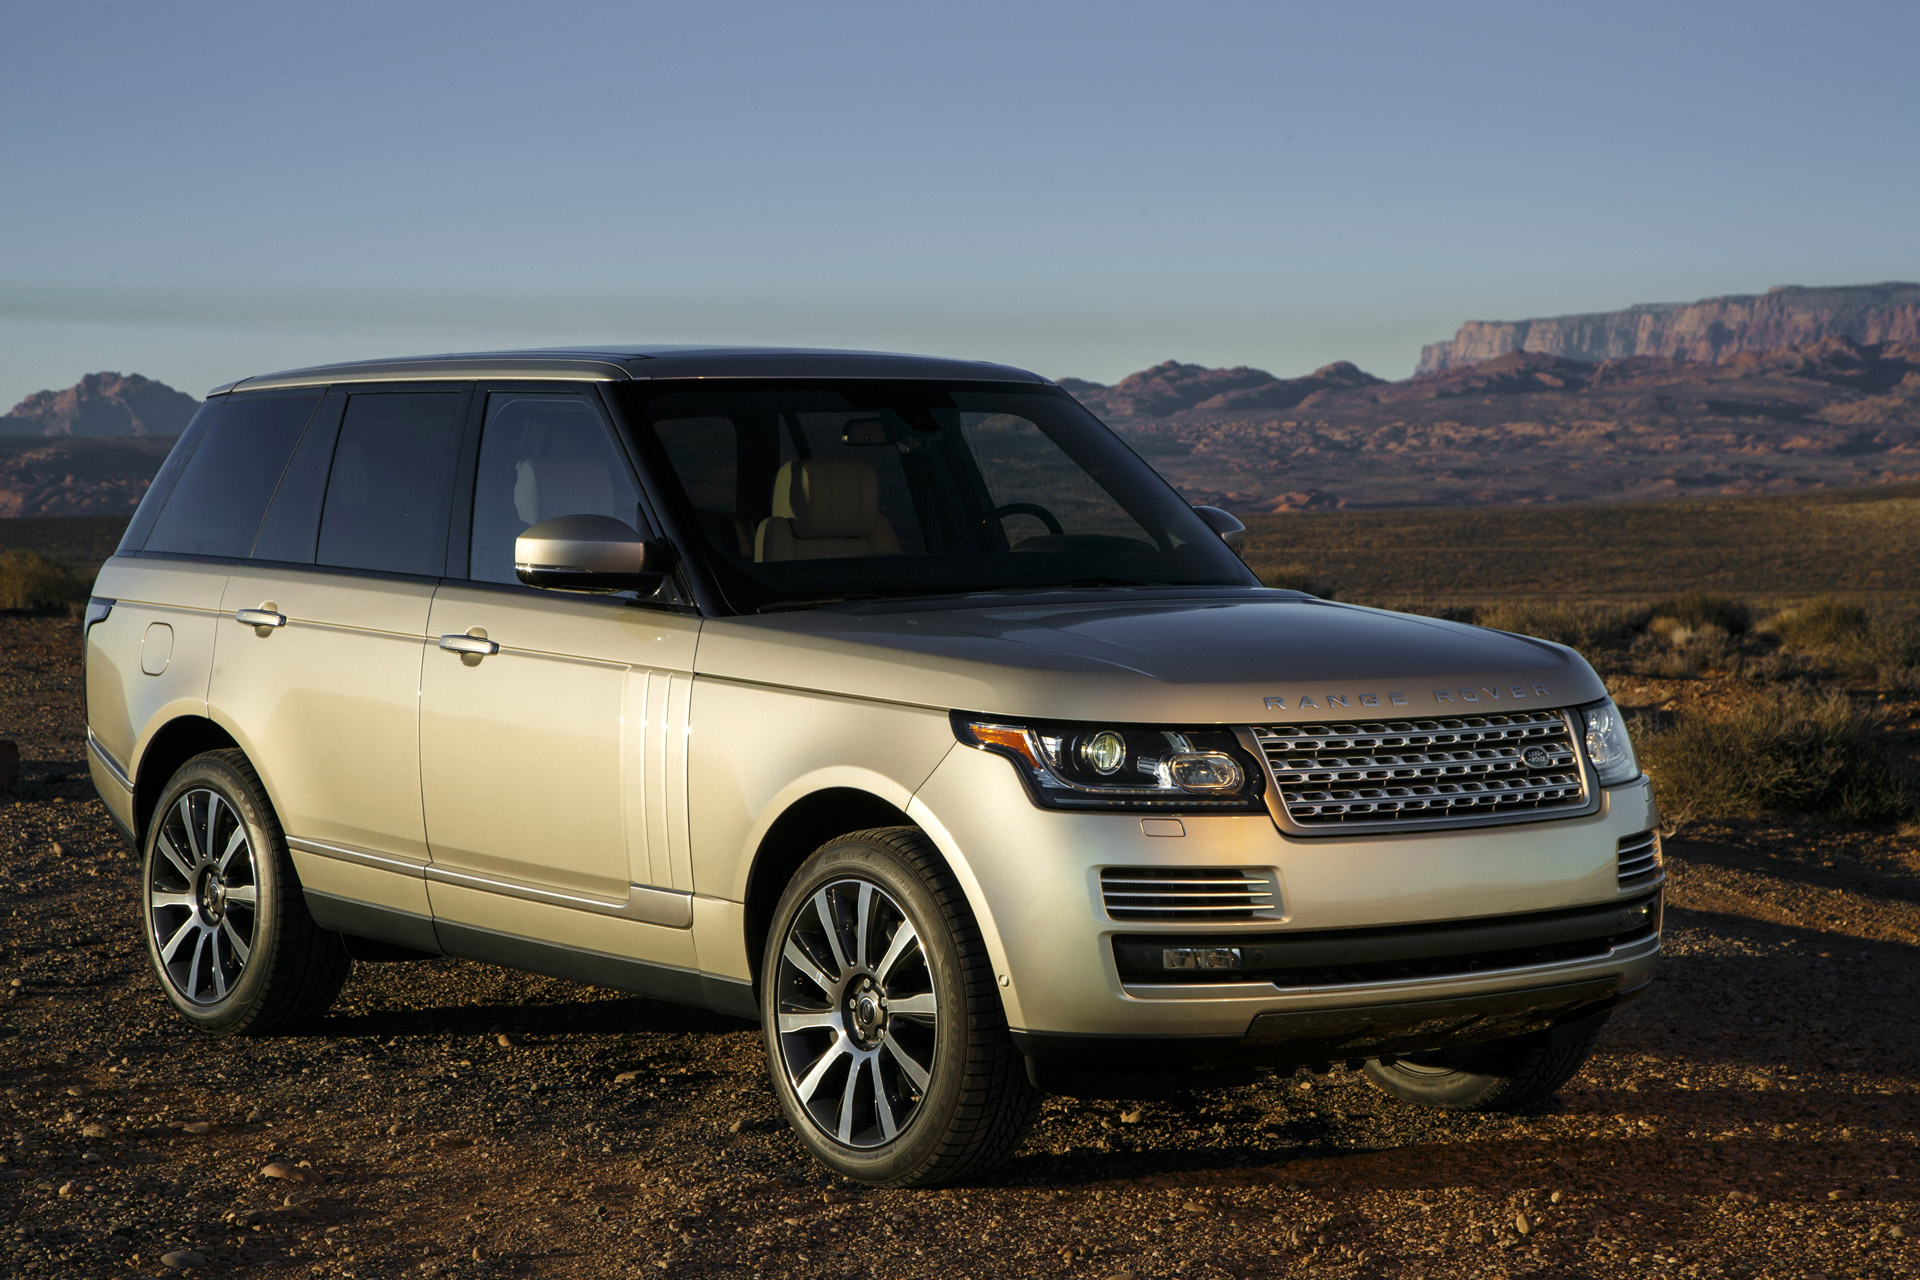 2015 land rover range rover safety review and crash test. Black Bedroom Furniture Sets. Home Design Ideas